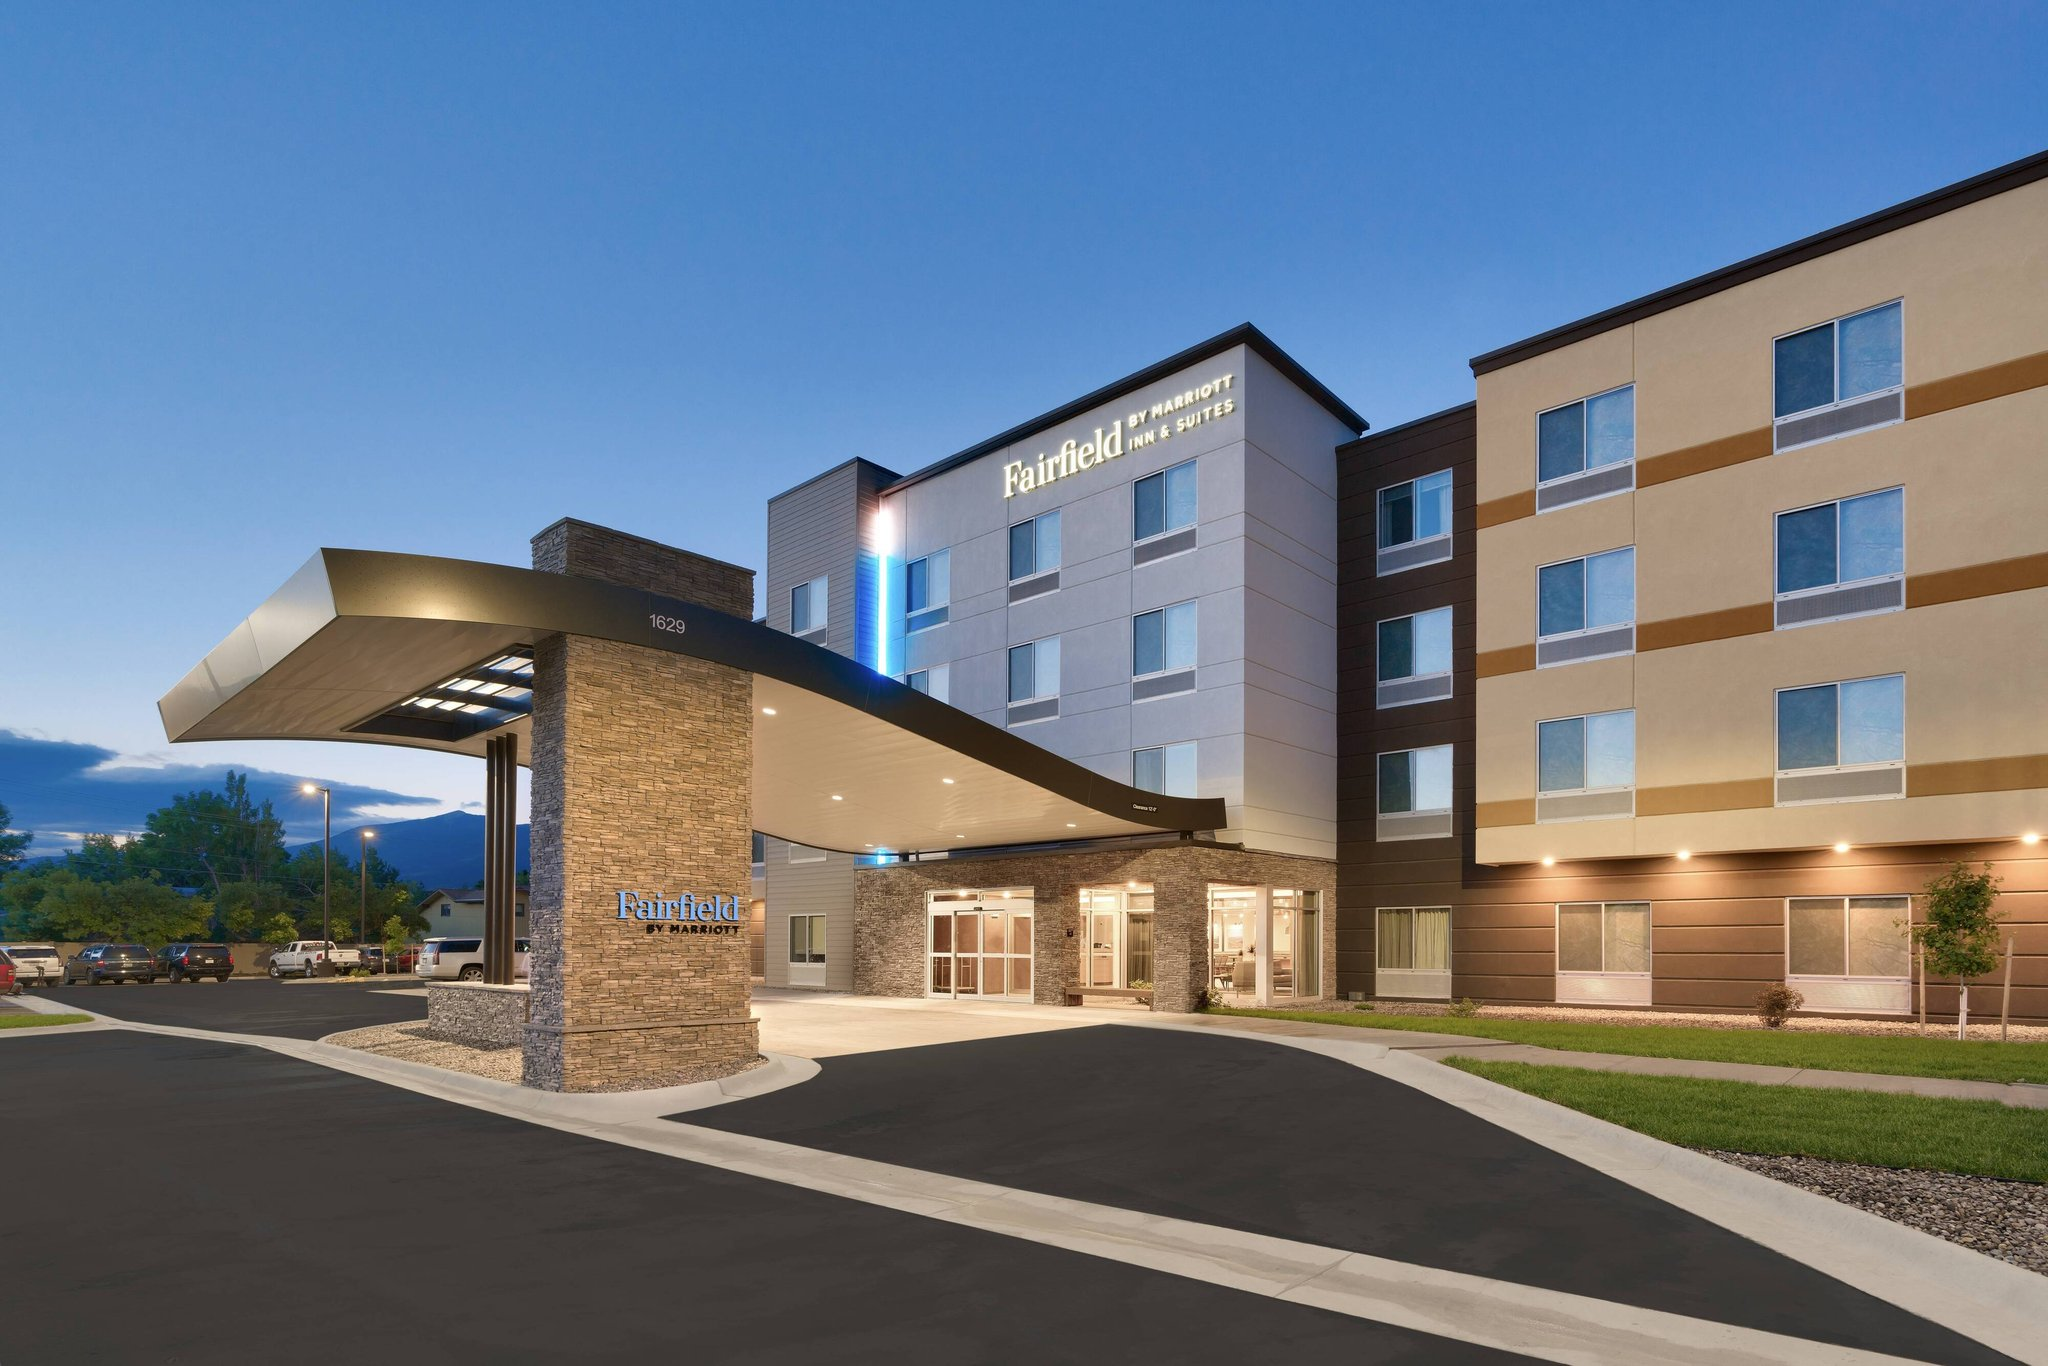 Fairfield by Marriott Inn and Suites Livingston Yellowstone